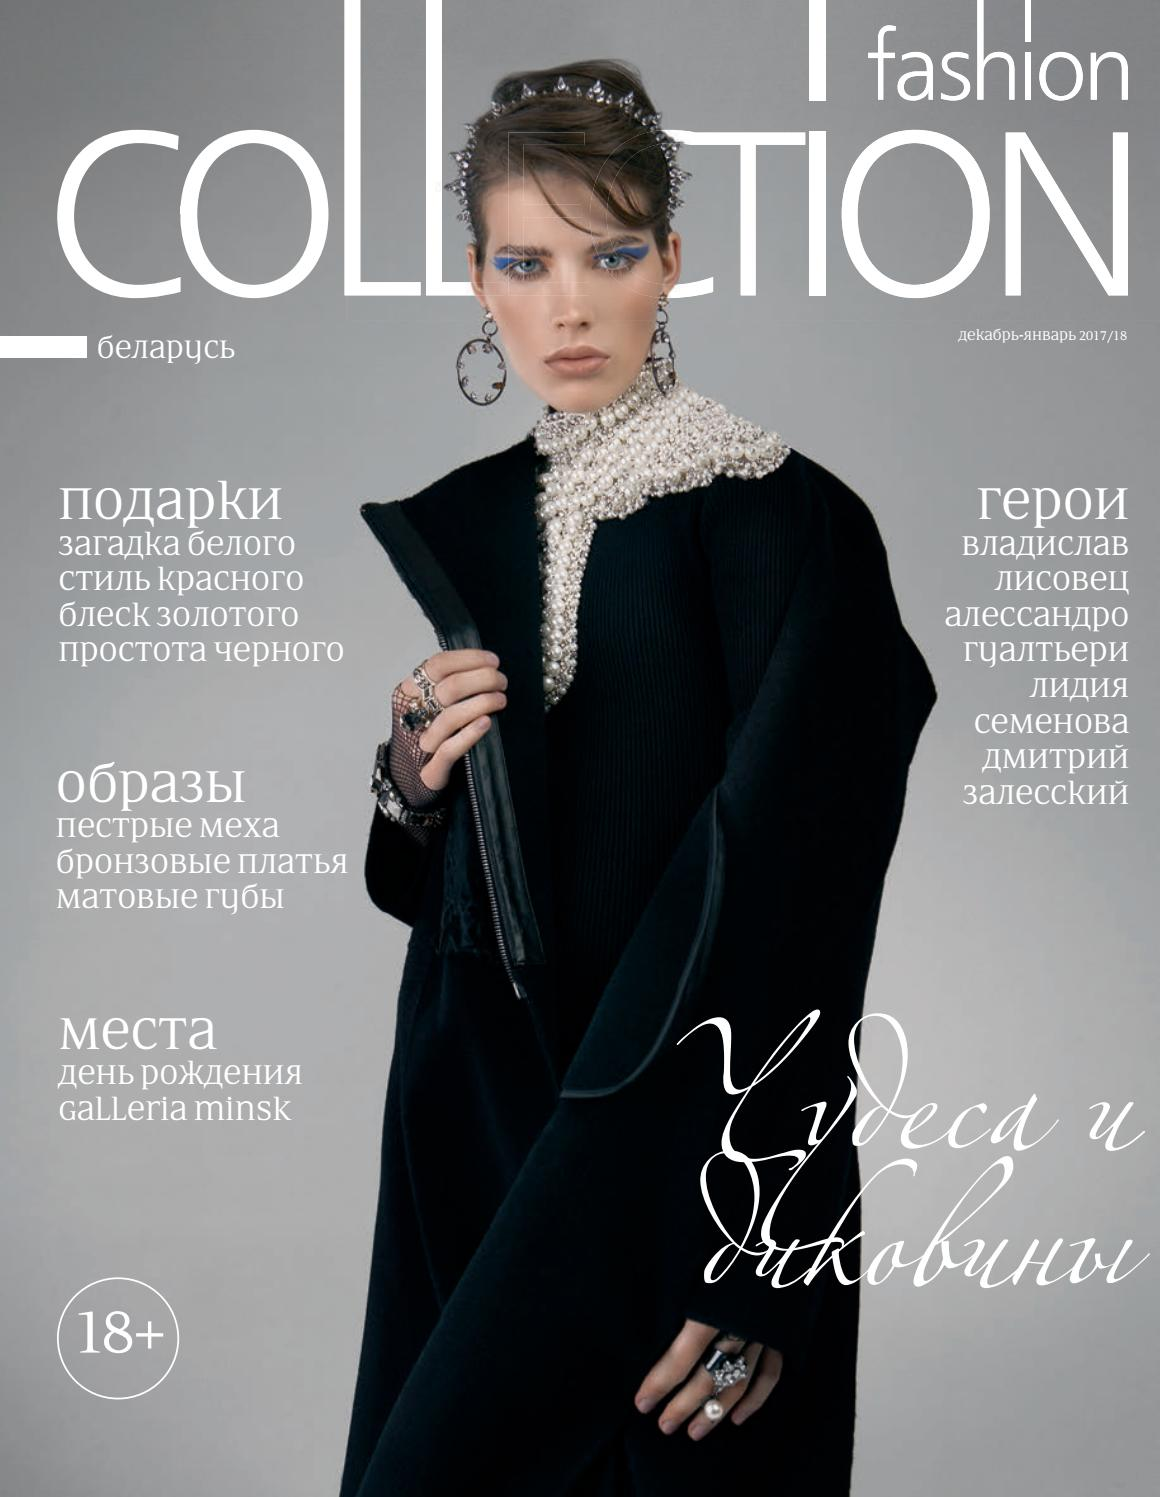 Fashion Сollection Belarus December 2017 by Fashion Collection Belarus -  issuu 00760963b87